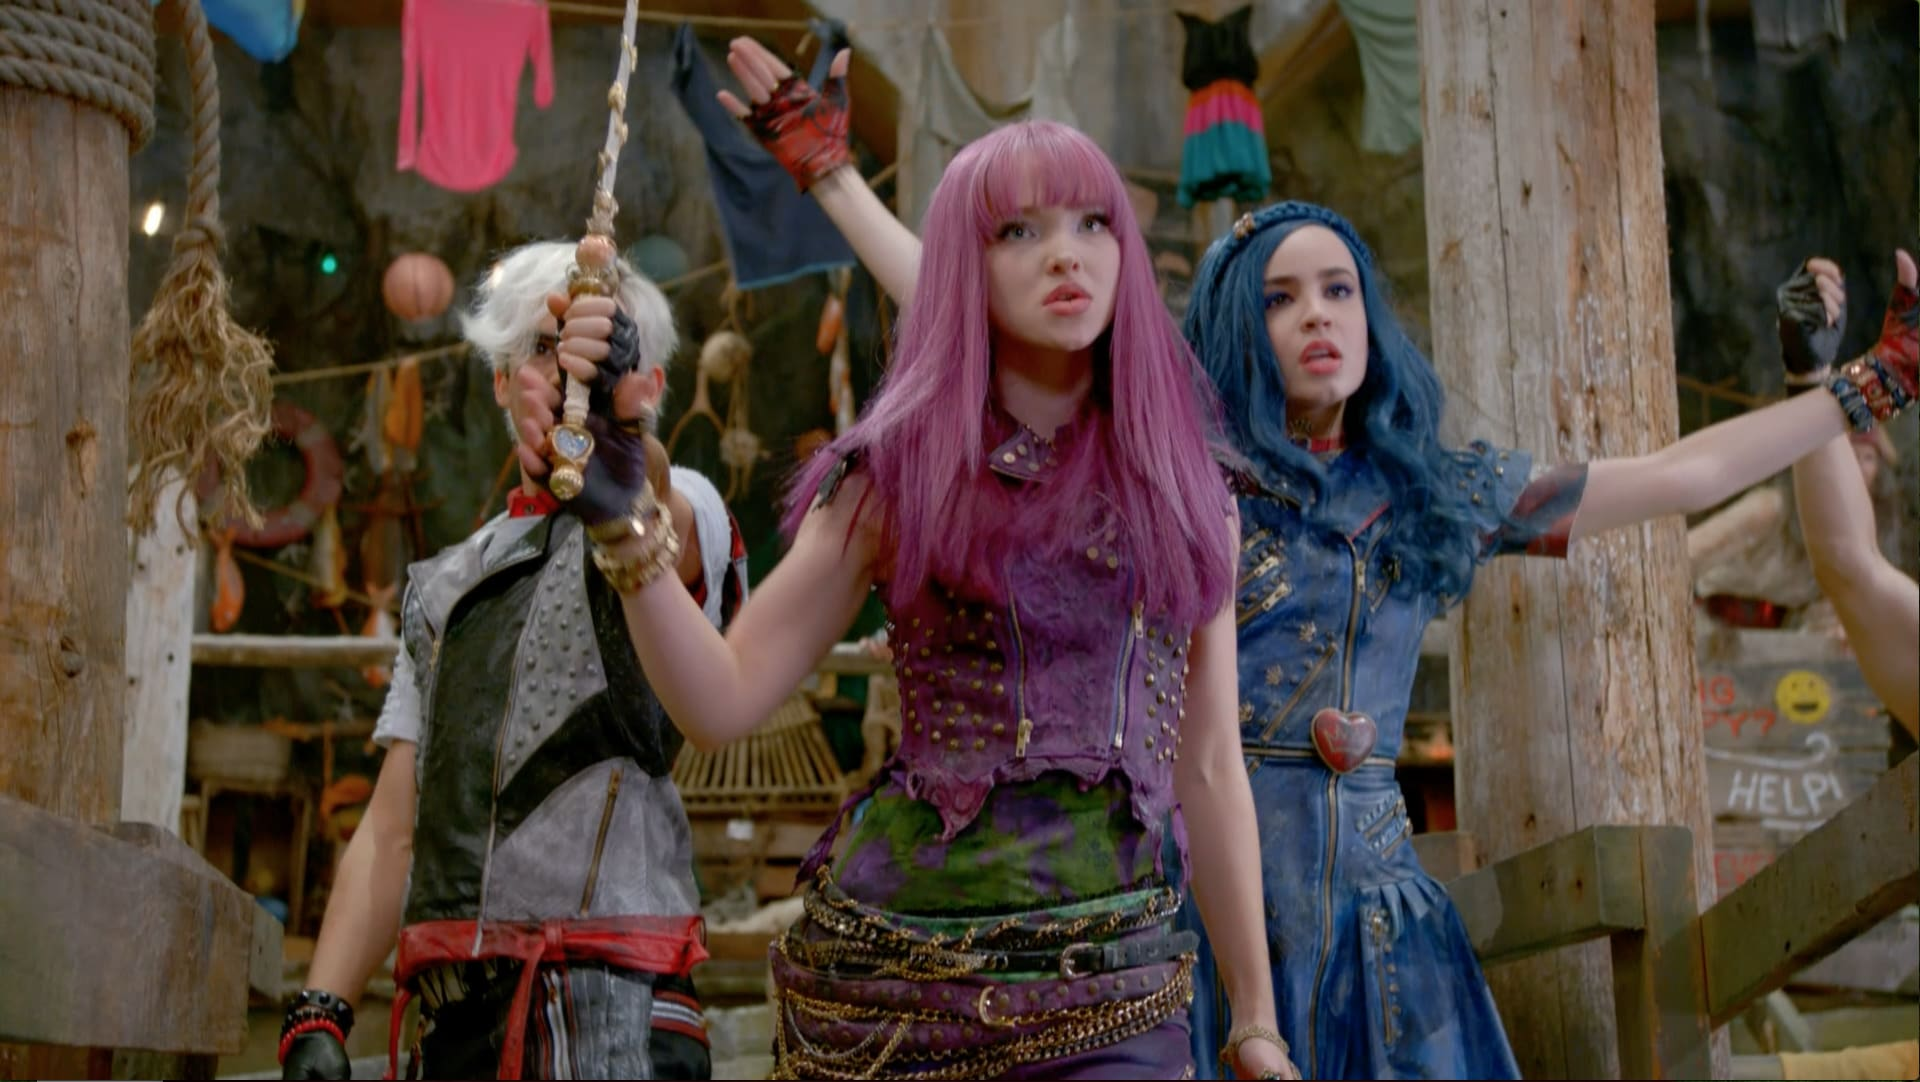 Descendentes 2 - Trailer